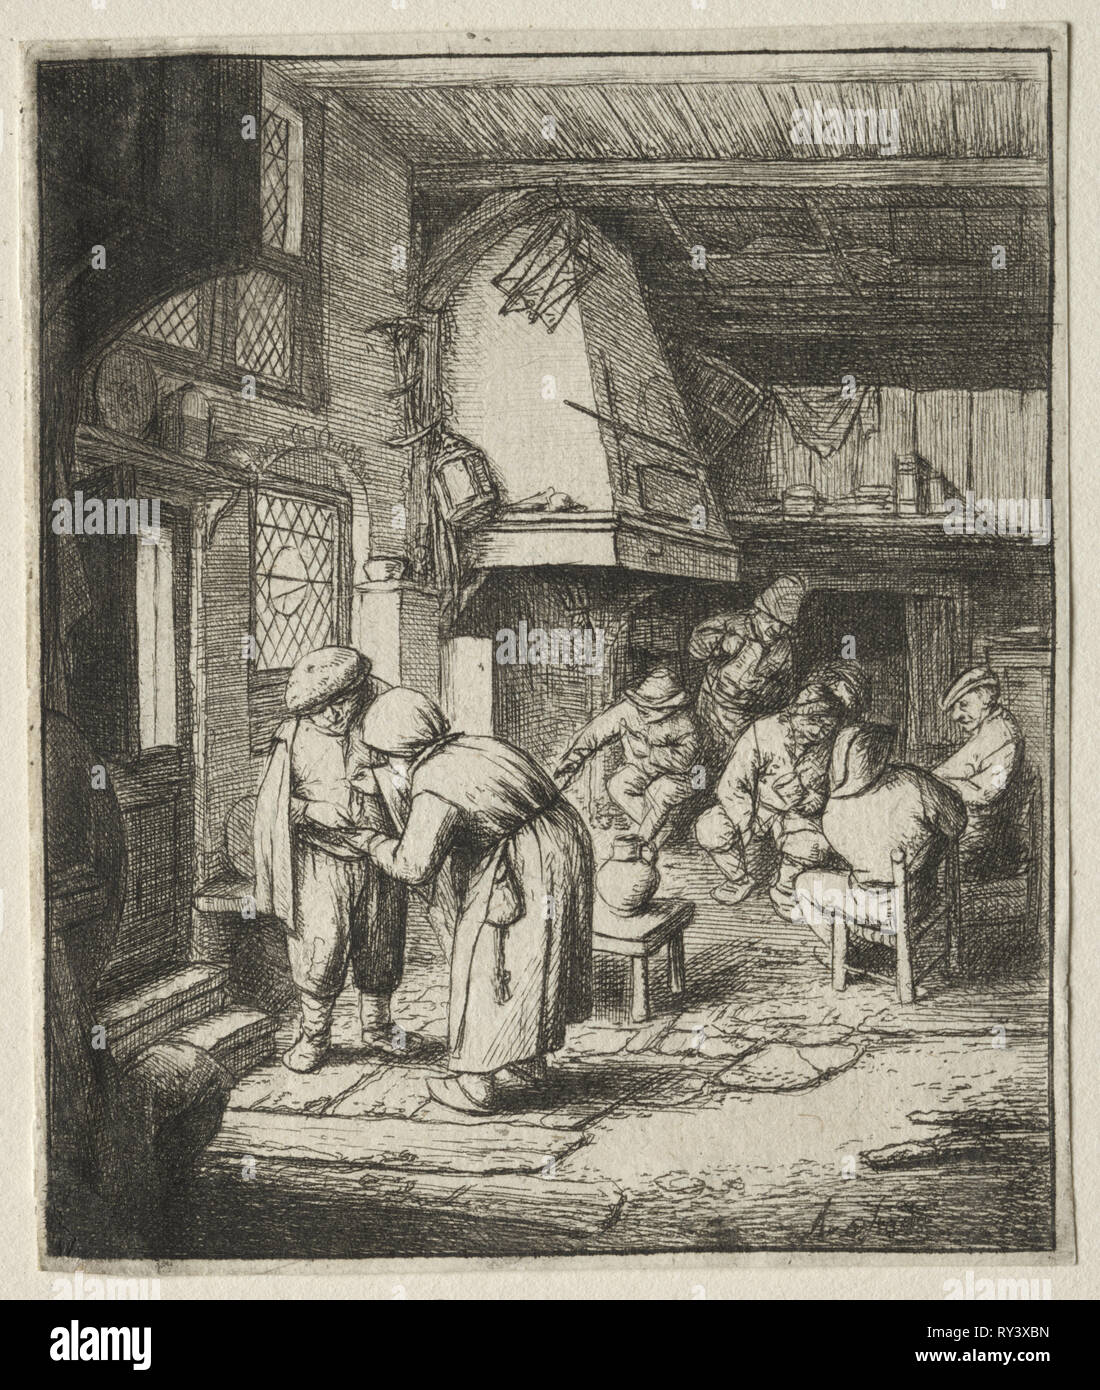 The Peasant settling his debt. Adriaen van Ostade (Dutch, 1610-1684). Etching - Stock Image